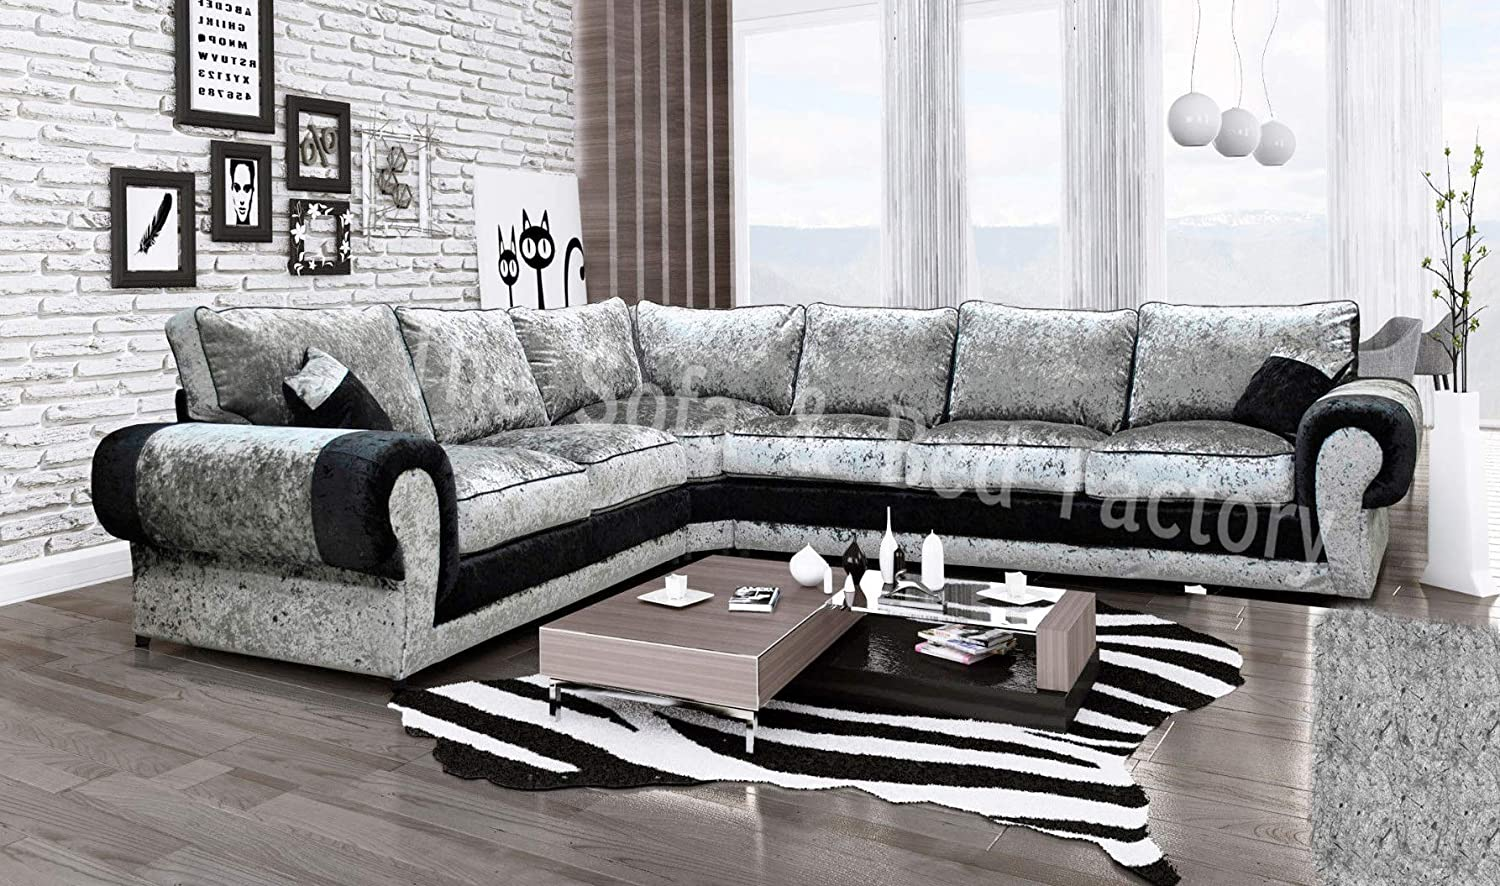 separation shoes b80ce 01b0f Details about Cheap Luxury Lara Crushed Velvet Large 6 Seater Corner Sofa  Black and Silver 2C3